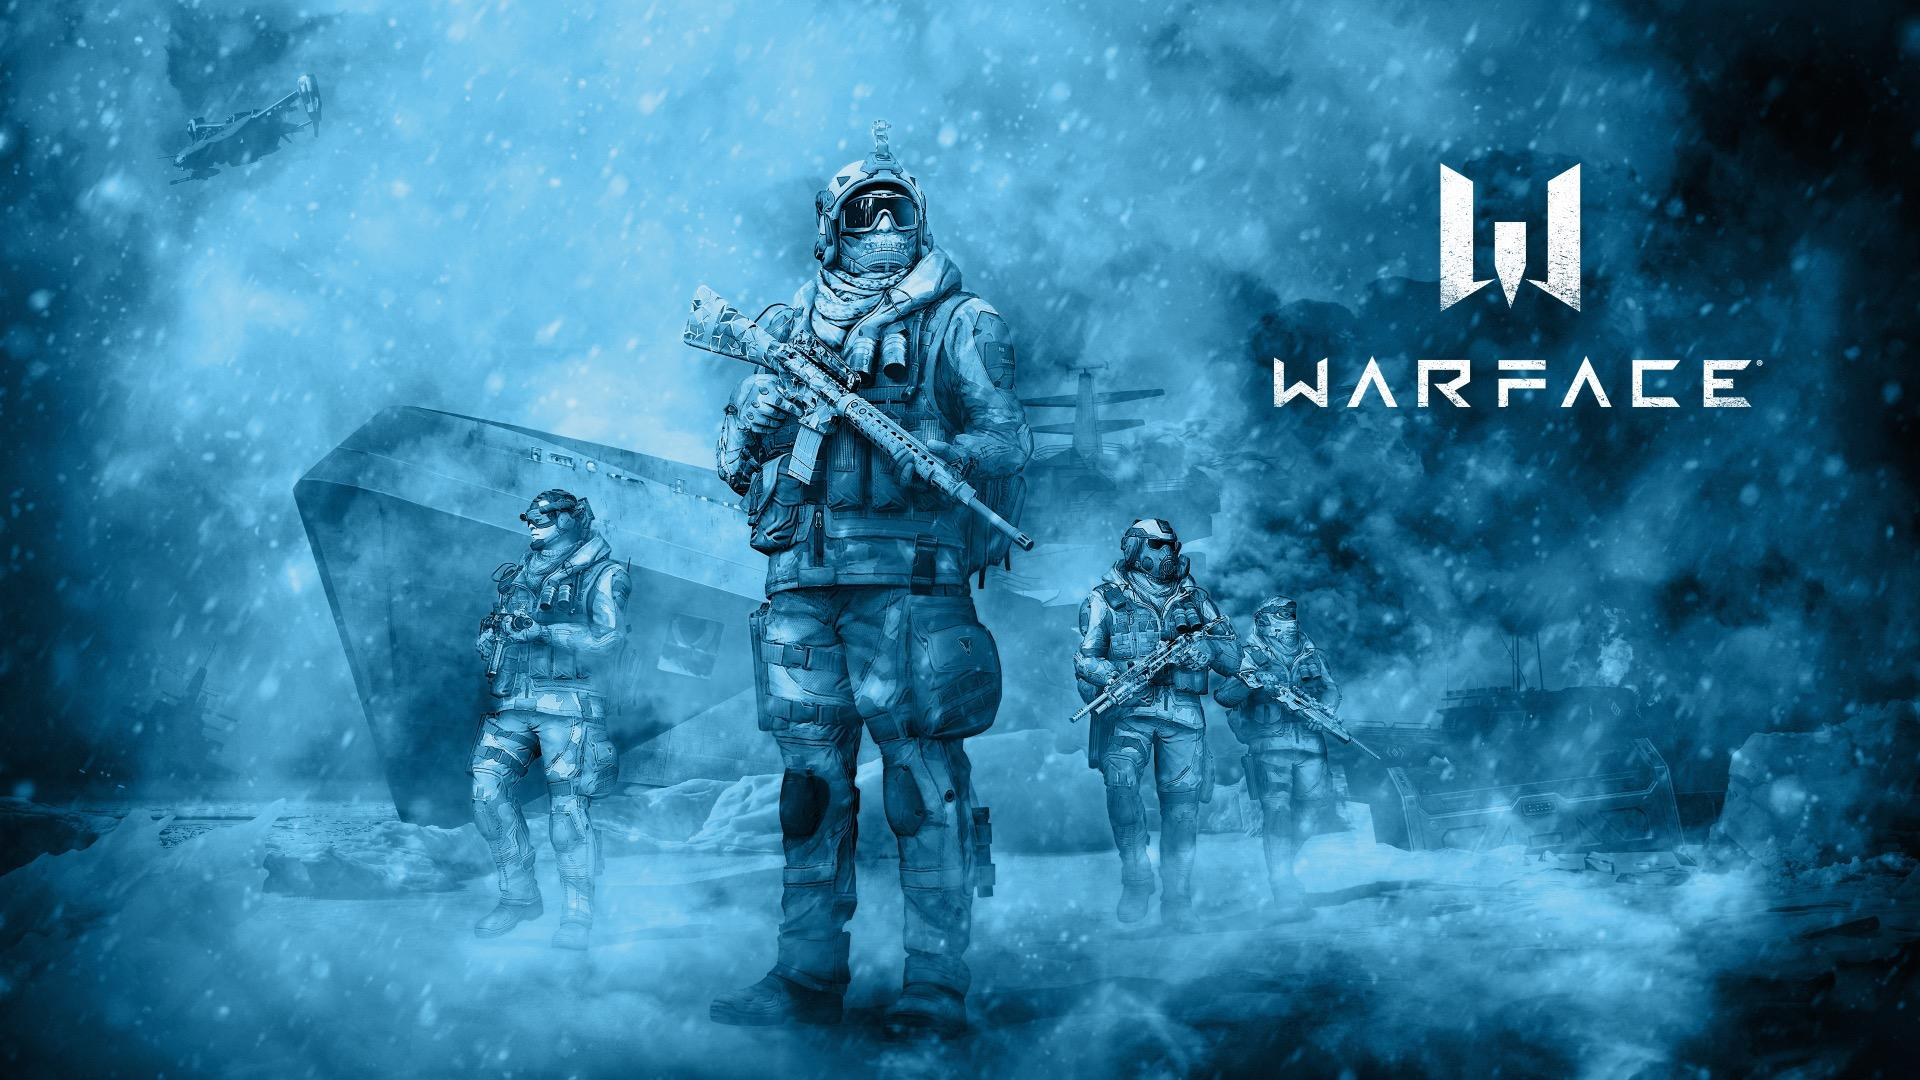 Warface 'Icebreaker' Co-Op Raid and New PvP Maps Out Now